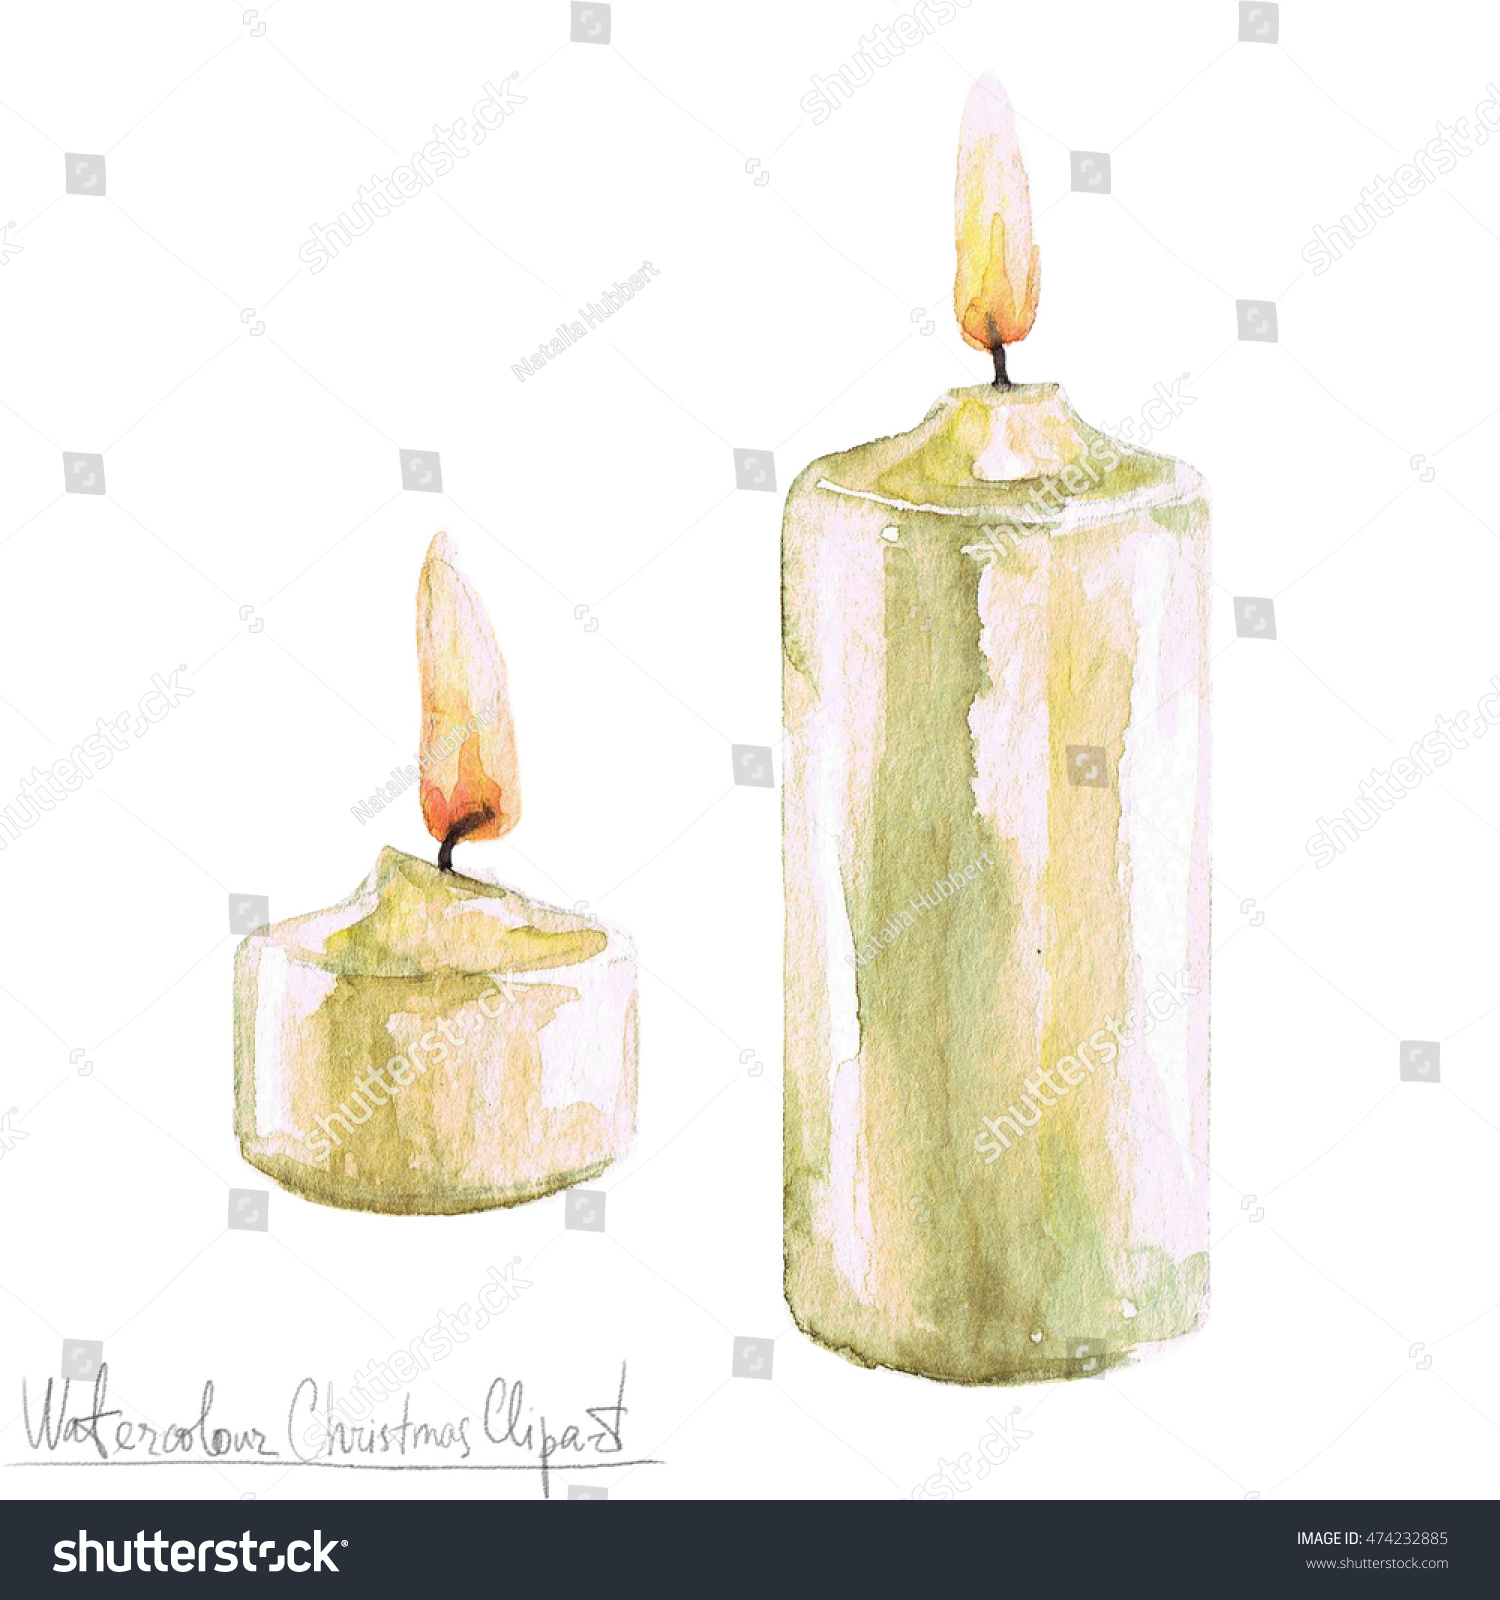 Completely new Watercolor Christmas Clipart Candles Stock Illustration 474232885  WO91